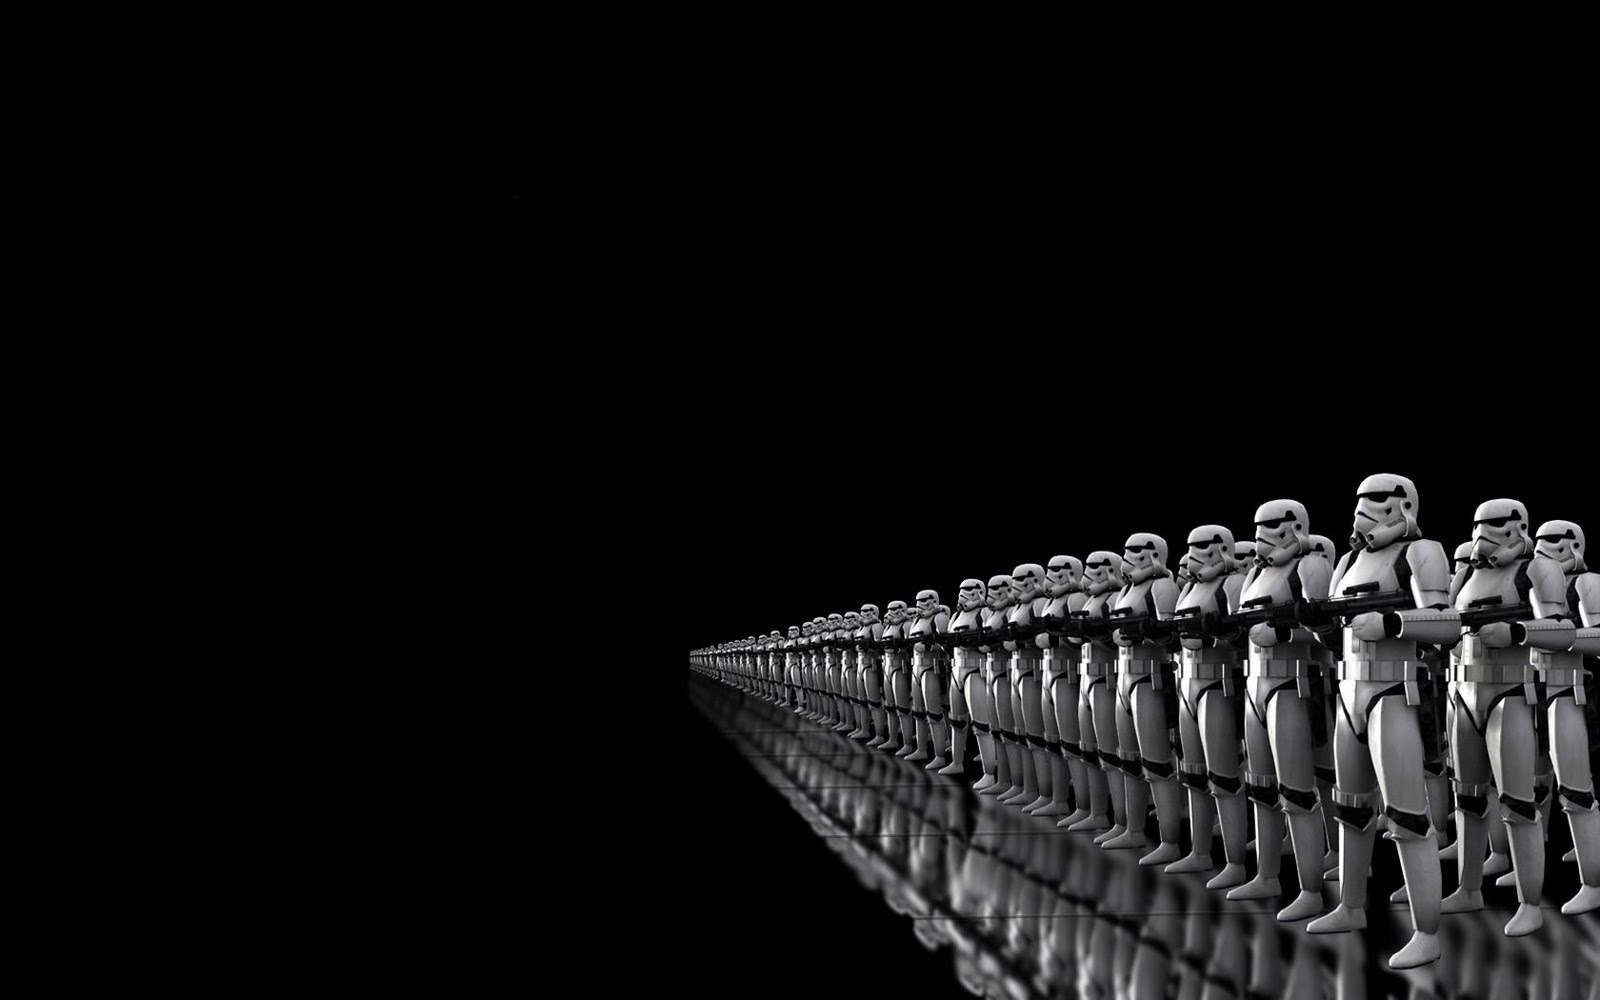 star wars backgrounds hd